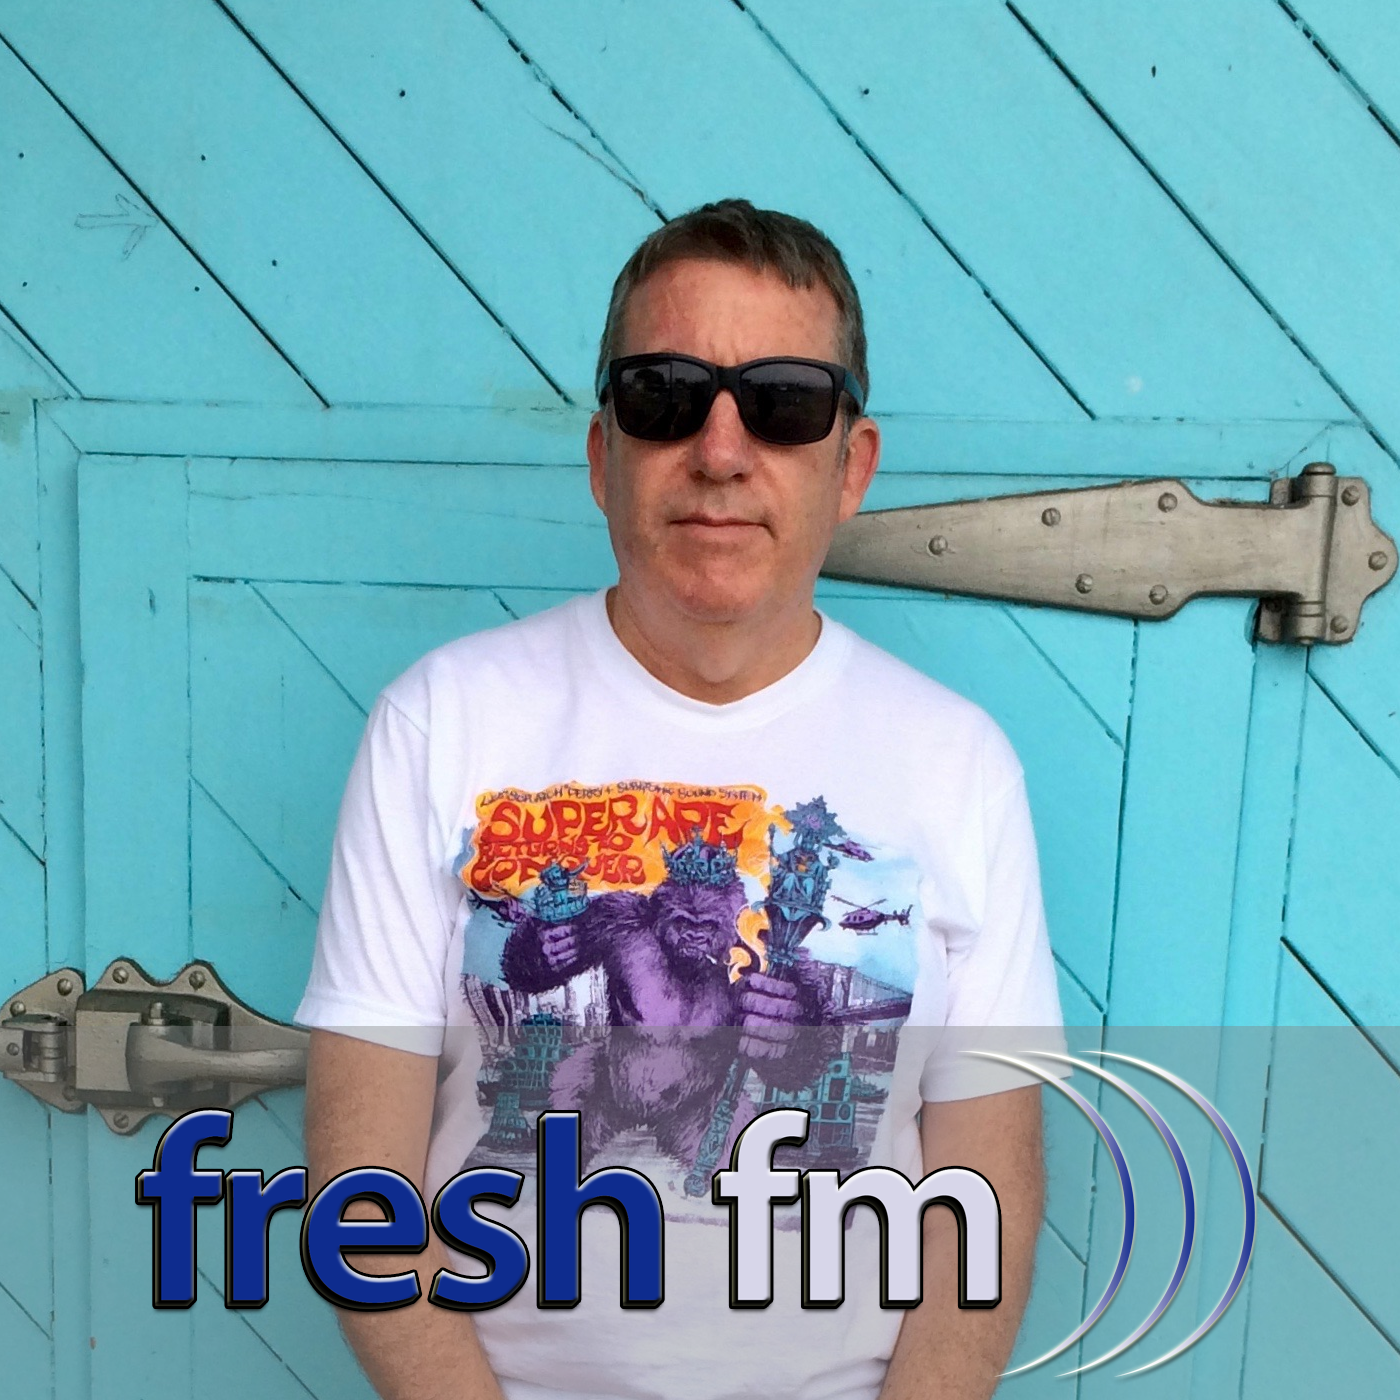 https://cdn.accessradio.org/StationFolder/freshfm/Images/Magnetic-City - Peter-Darlington.png